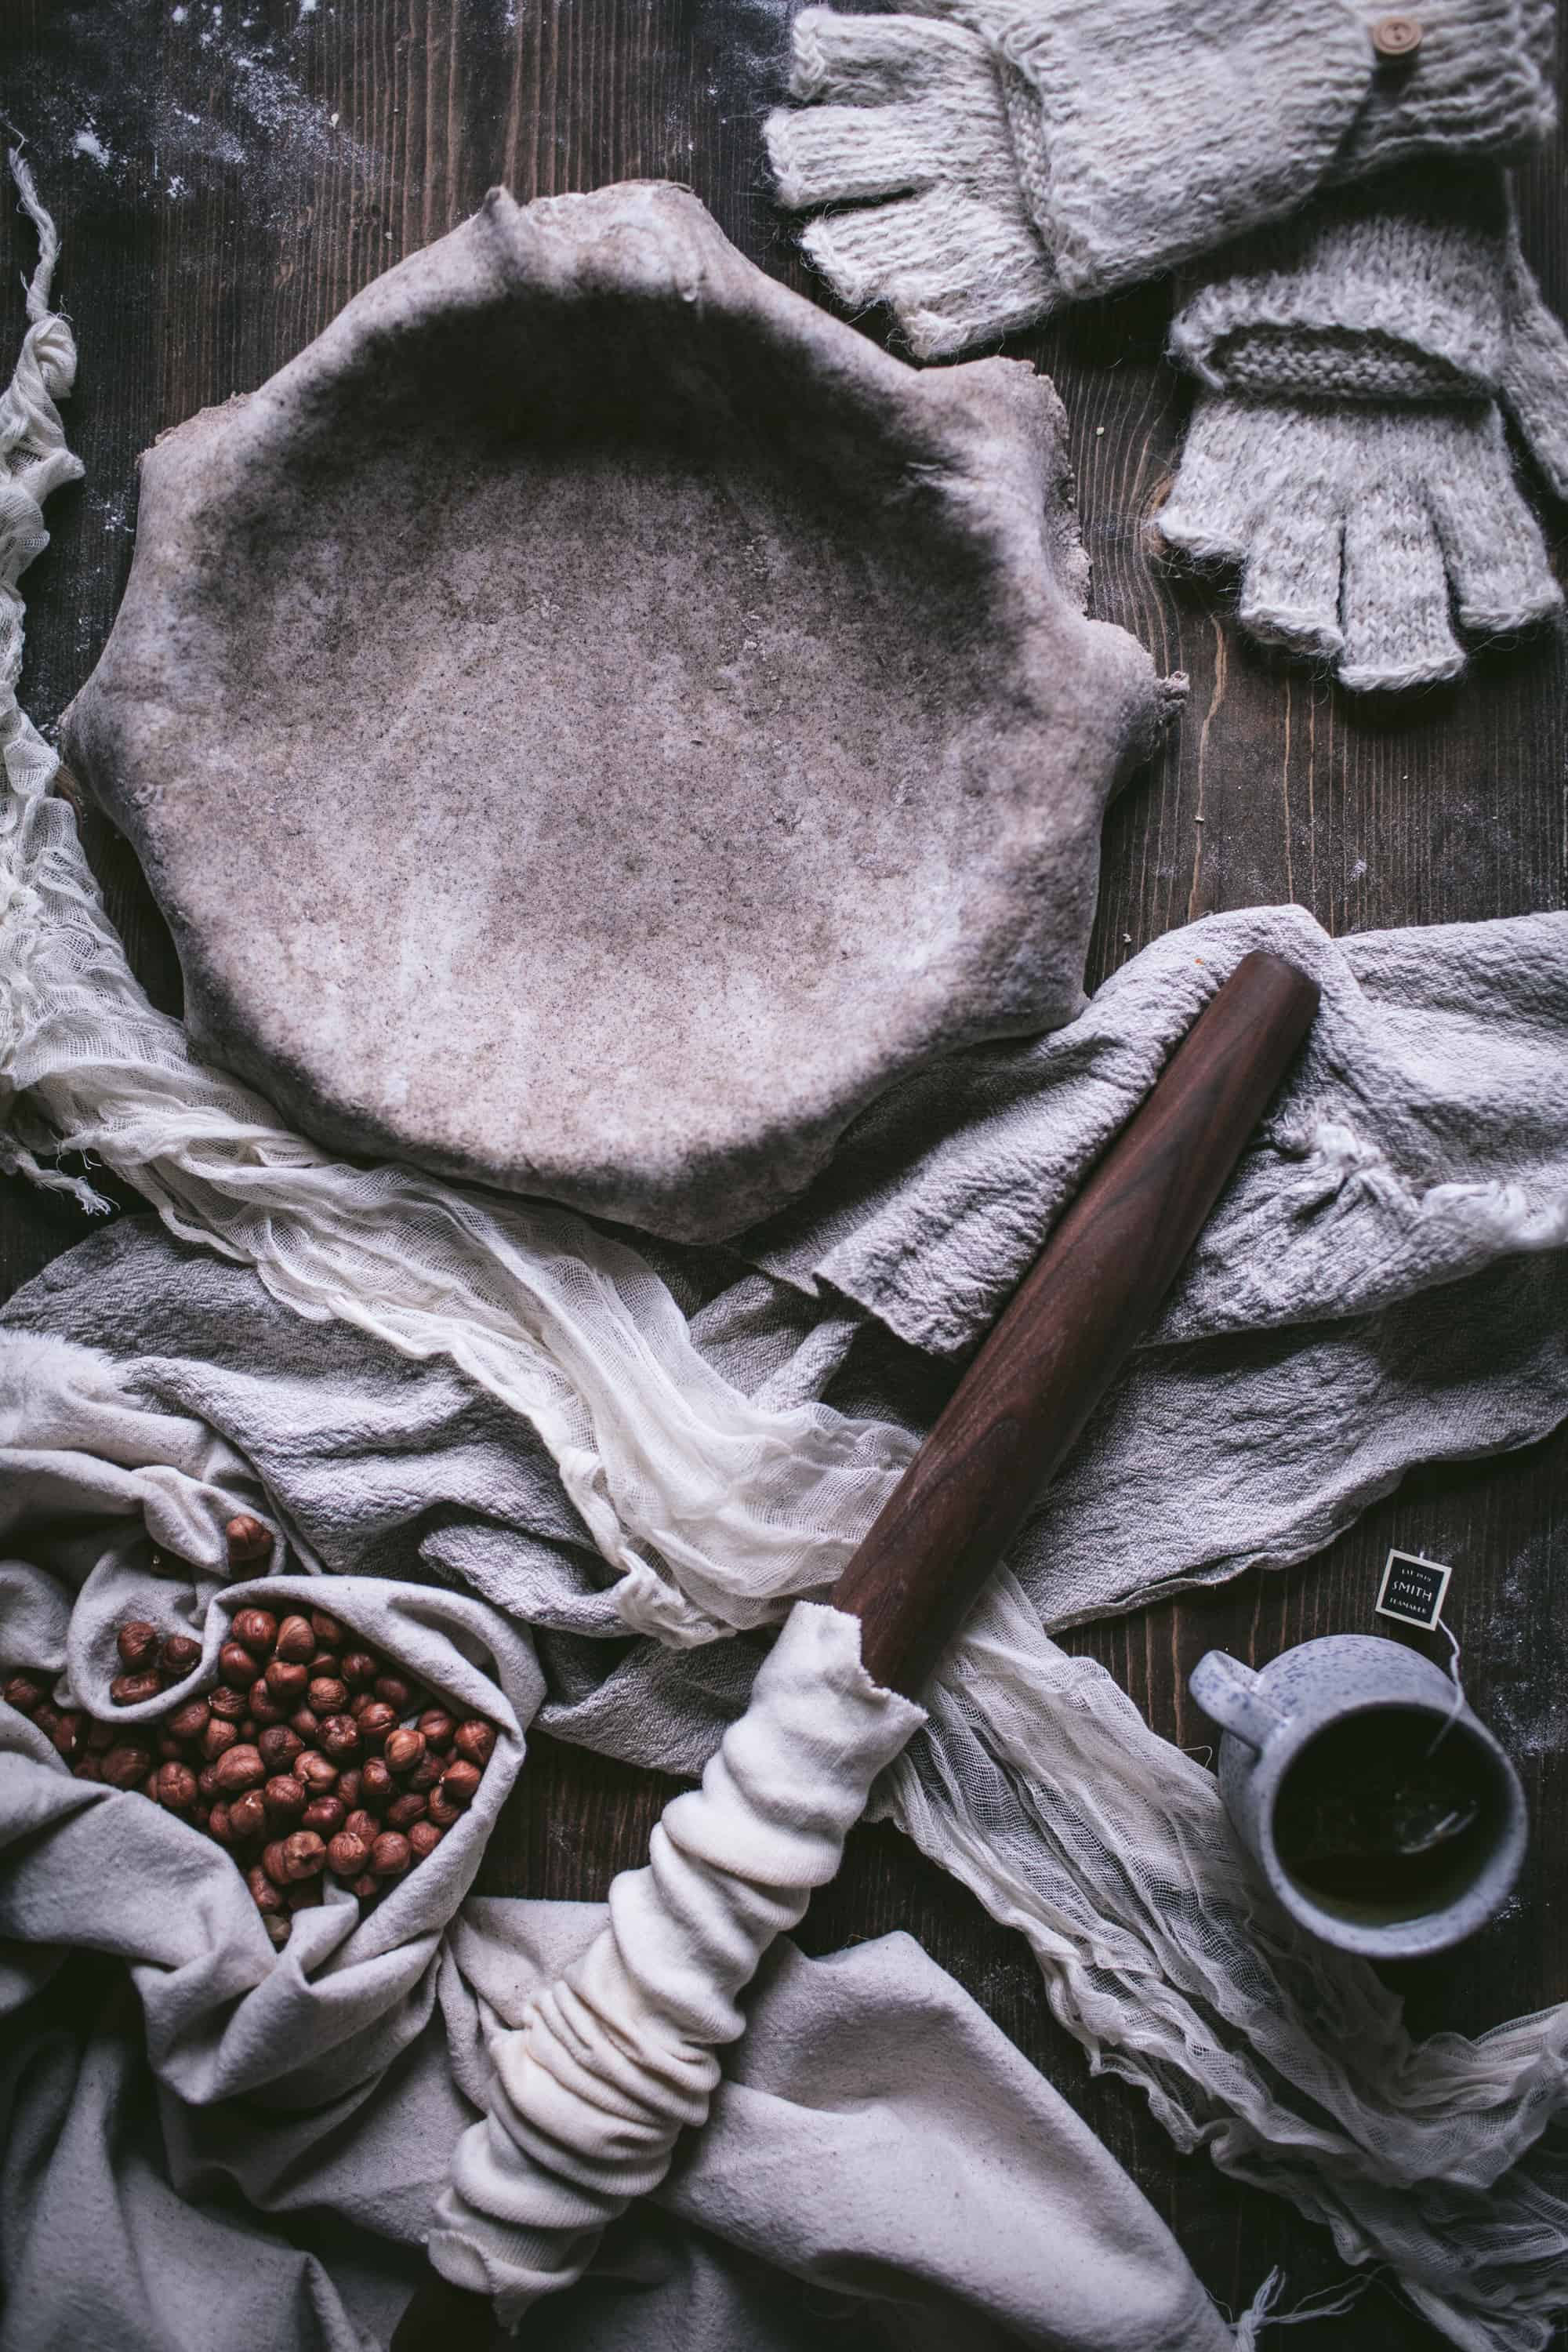 Hazelnut Chocolate Chess Pie With A Buckwheat Crust by Eva Kosmas Flores